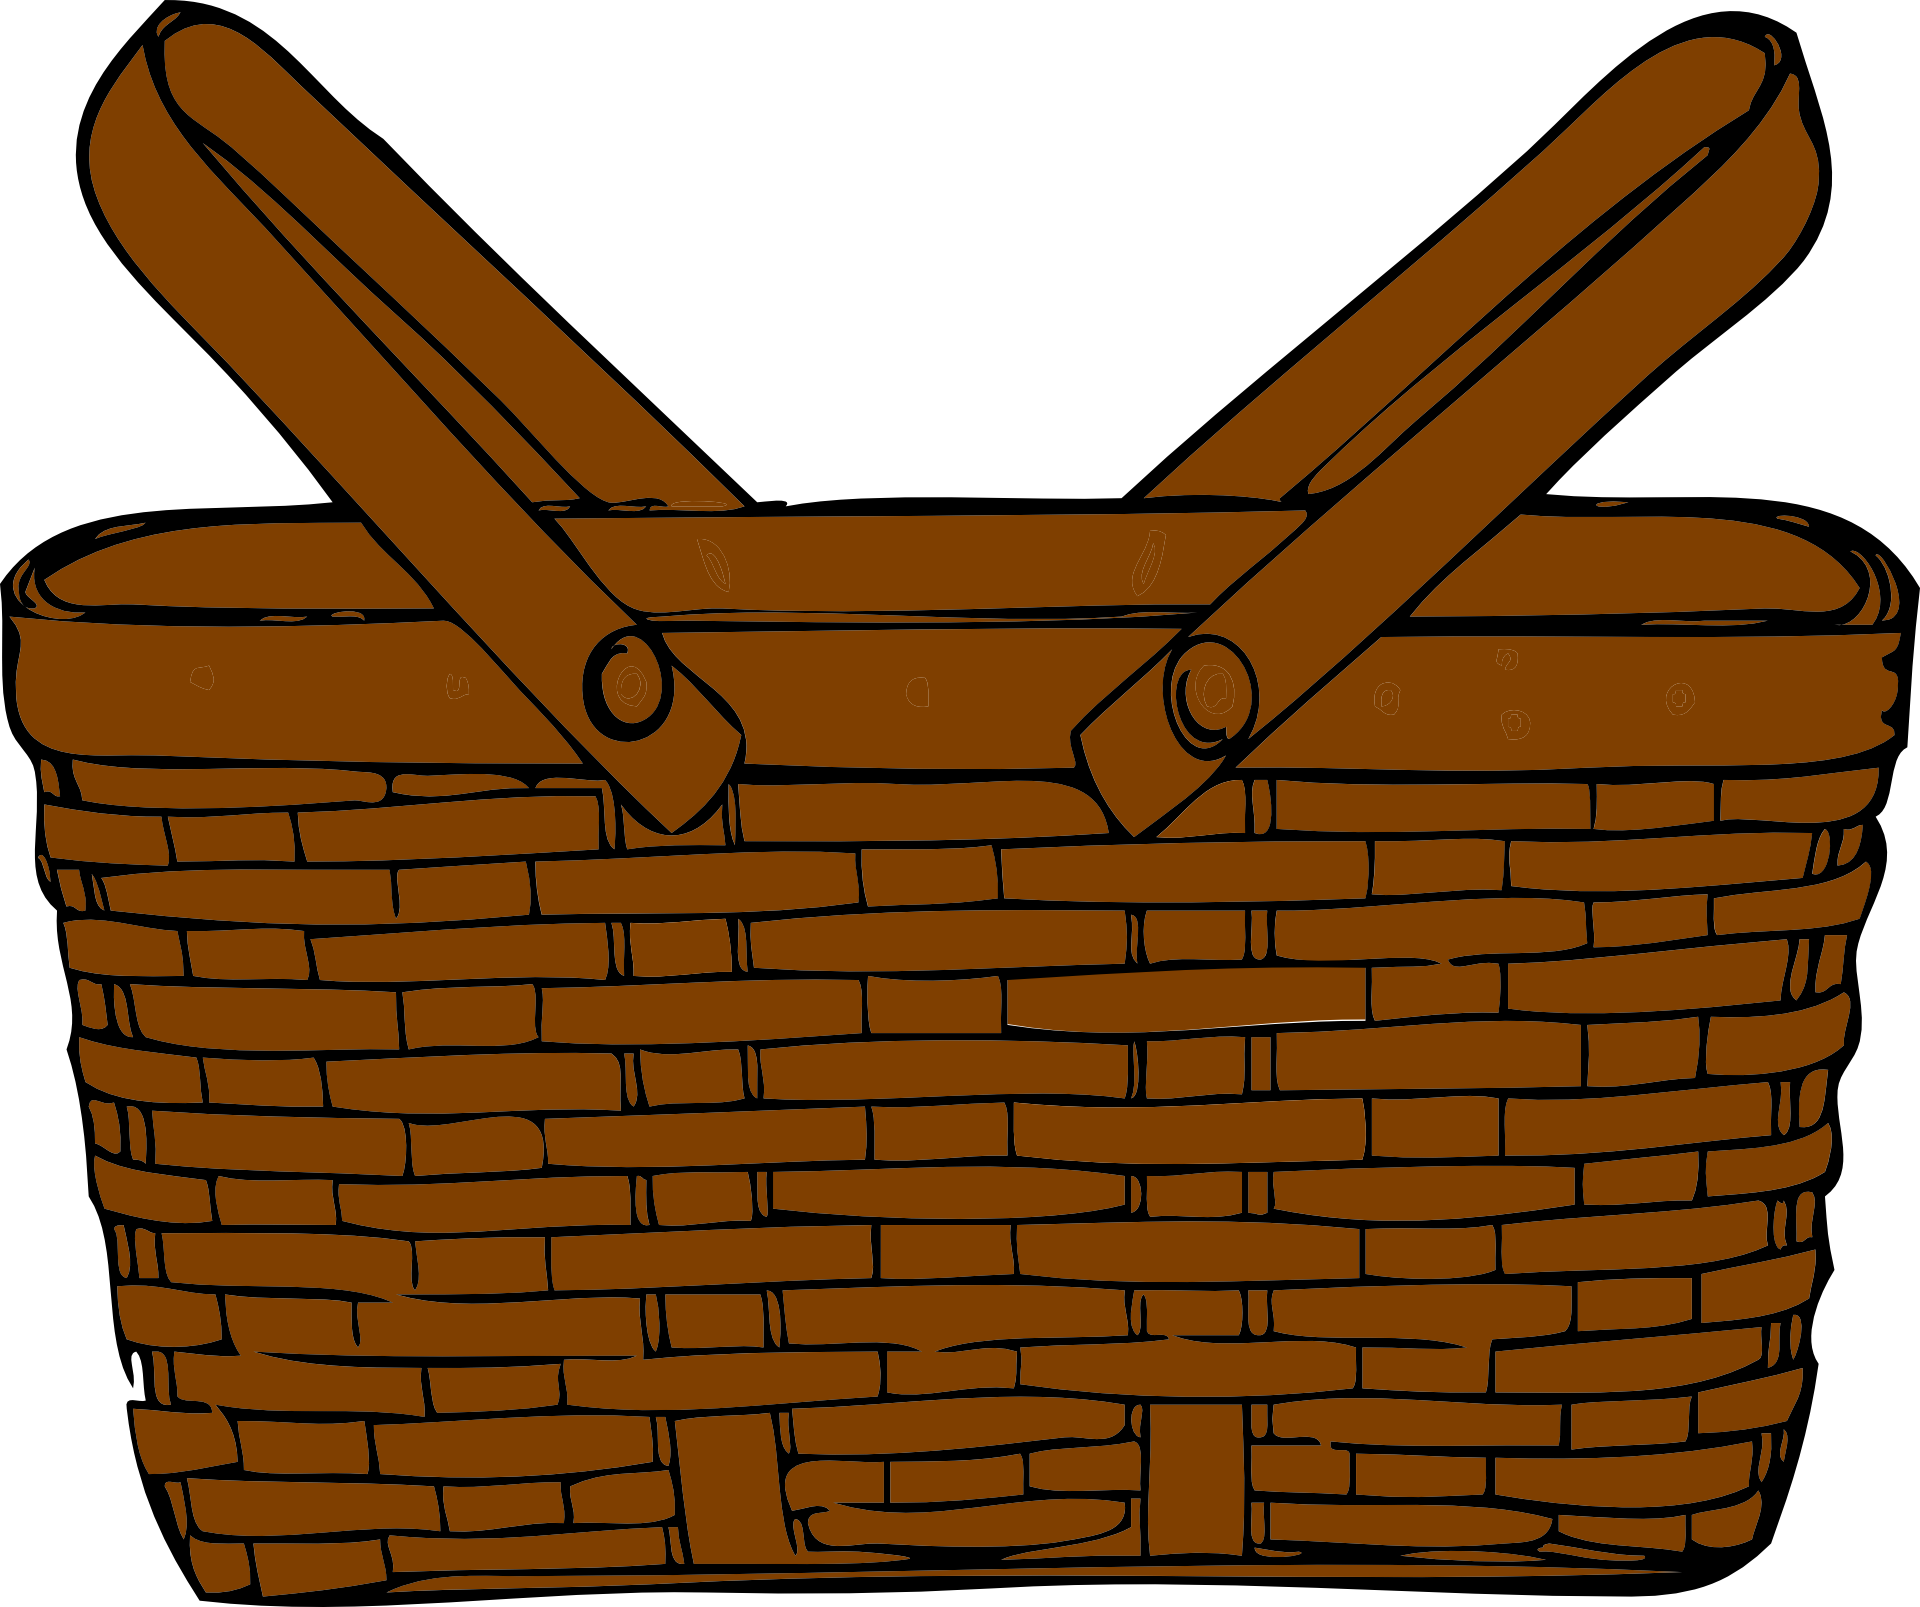 banner royalty free Basket mat free on. Checkered clipart picnic blanket.